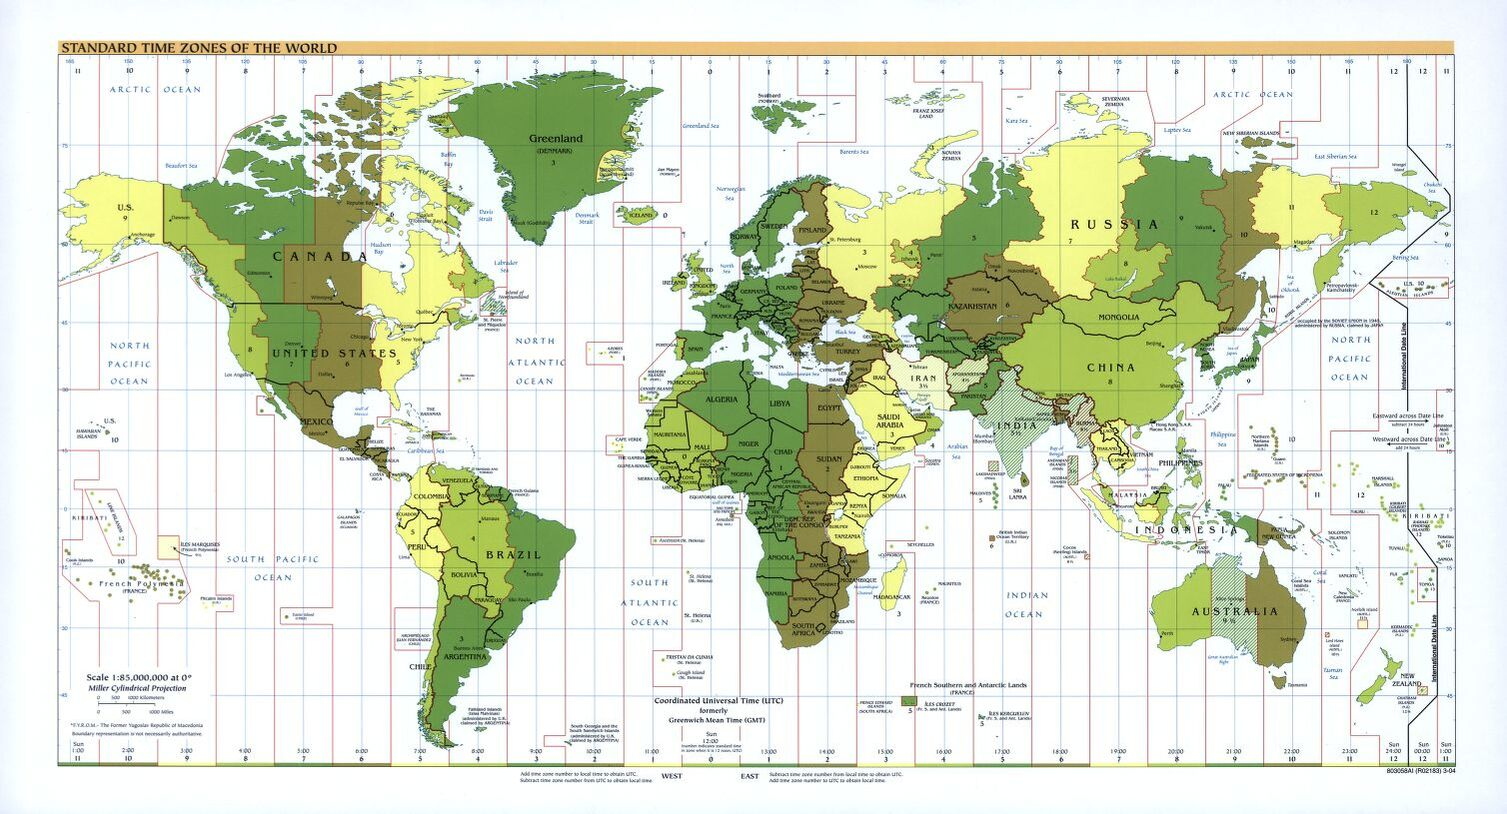 The World Standard time zones Map   | 2004 | Large, Printable Downloadable Map